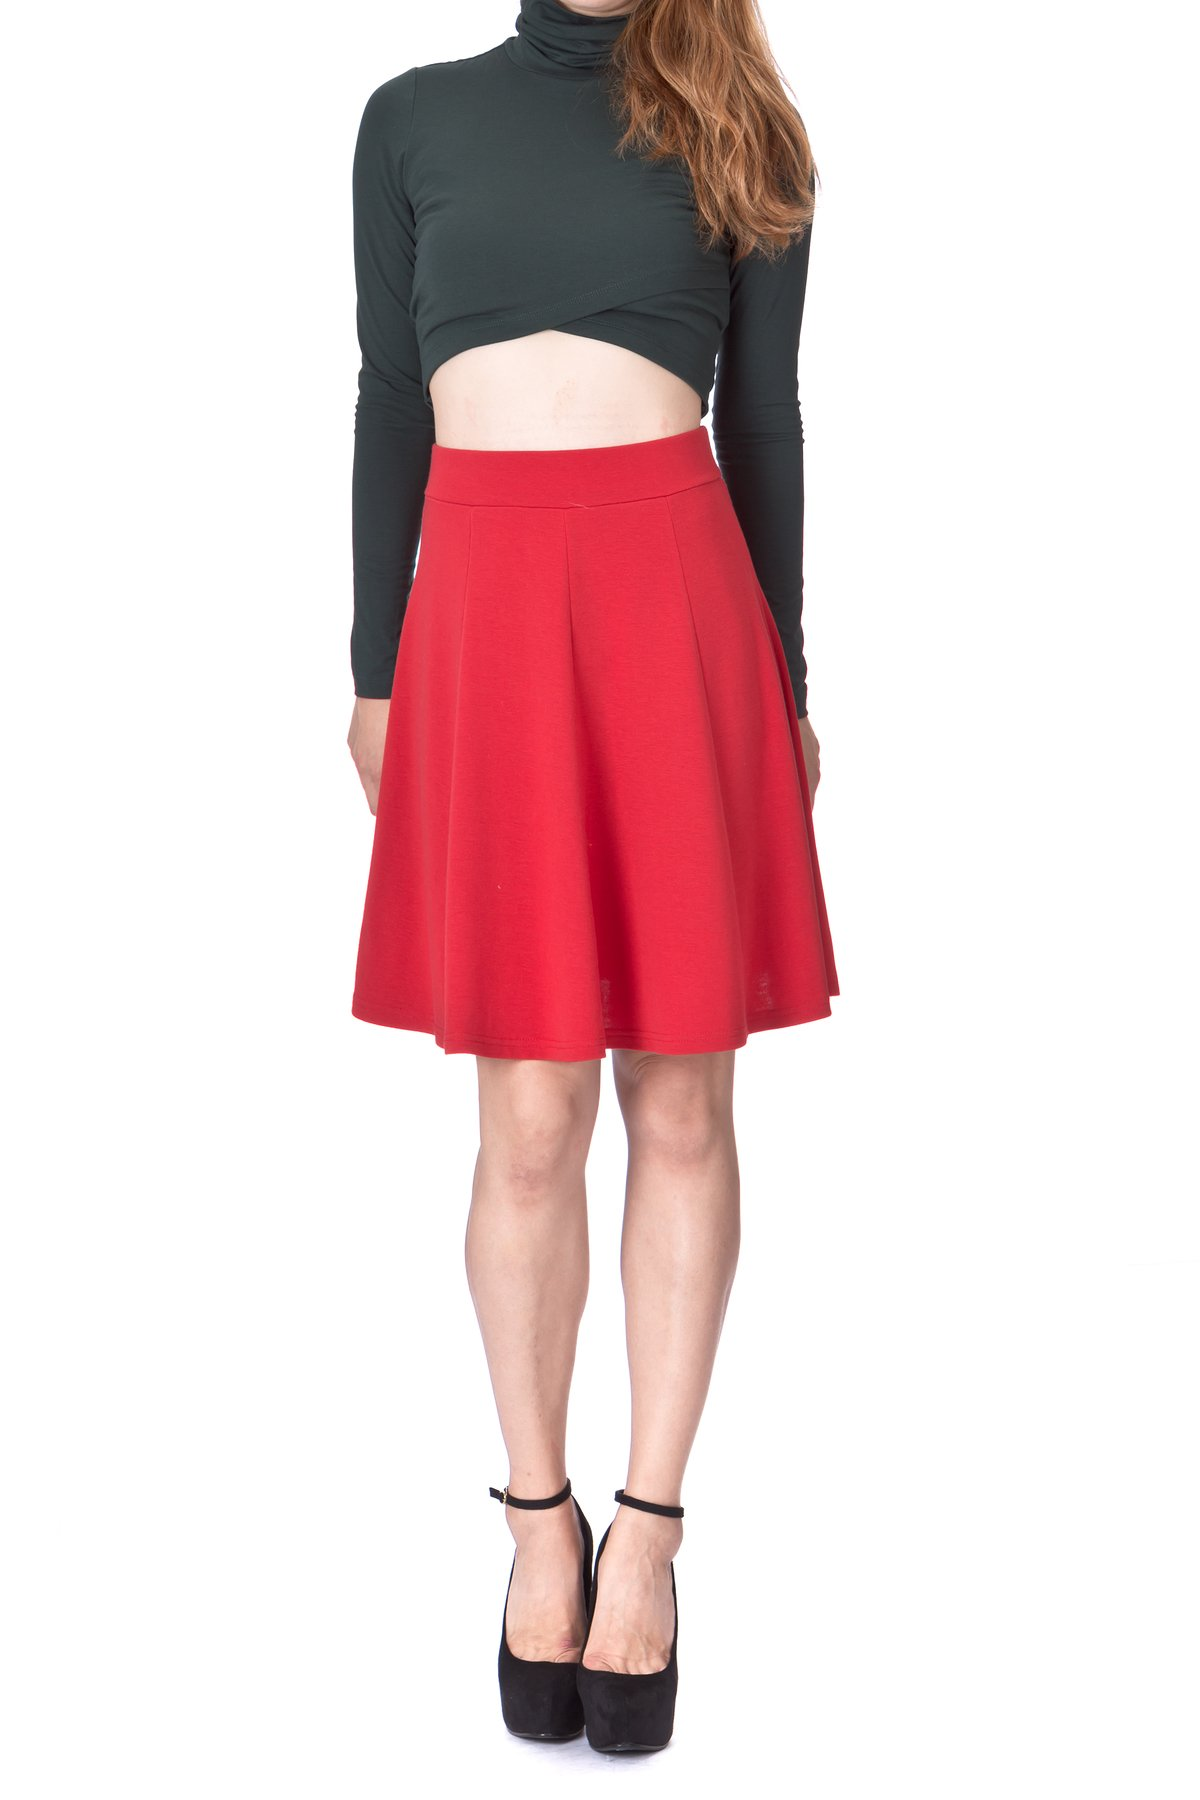 Casual to Formal Stretch Gored Flared Trumpet Mermaid Knee Length Skirt Red 4